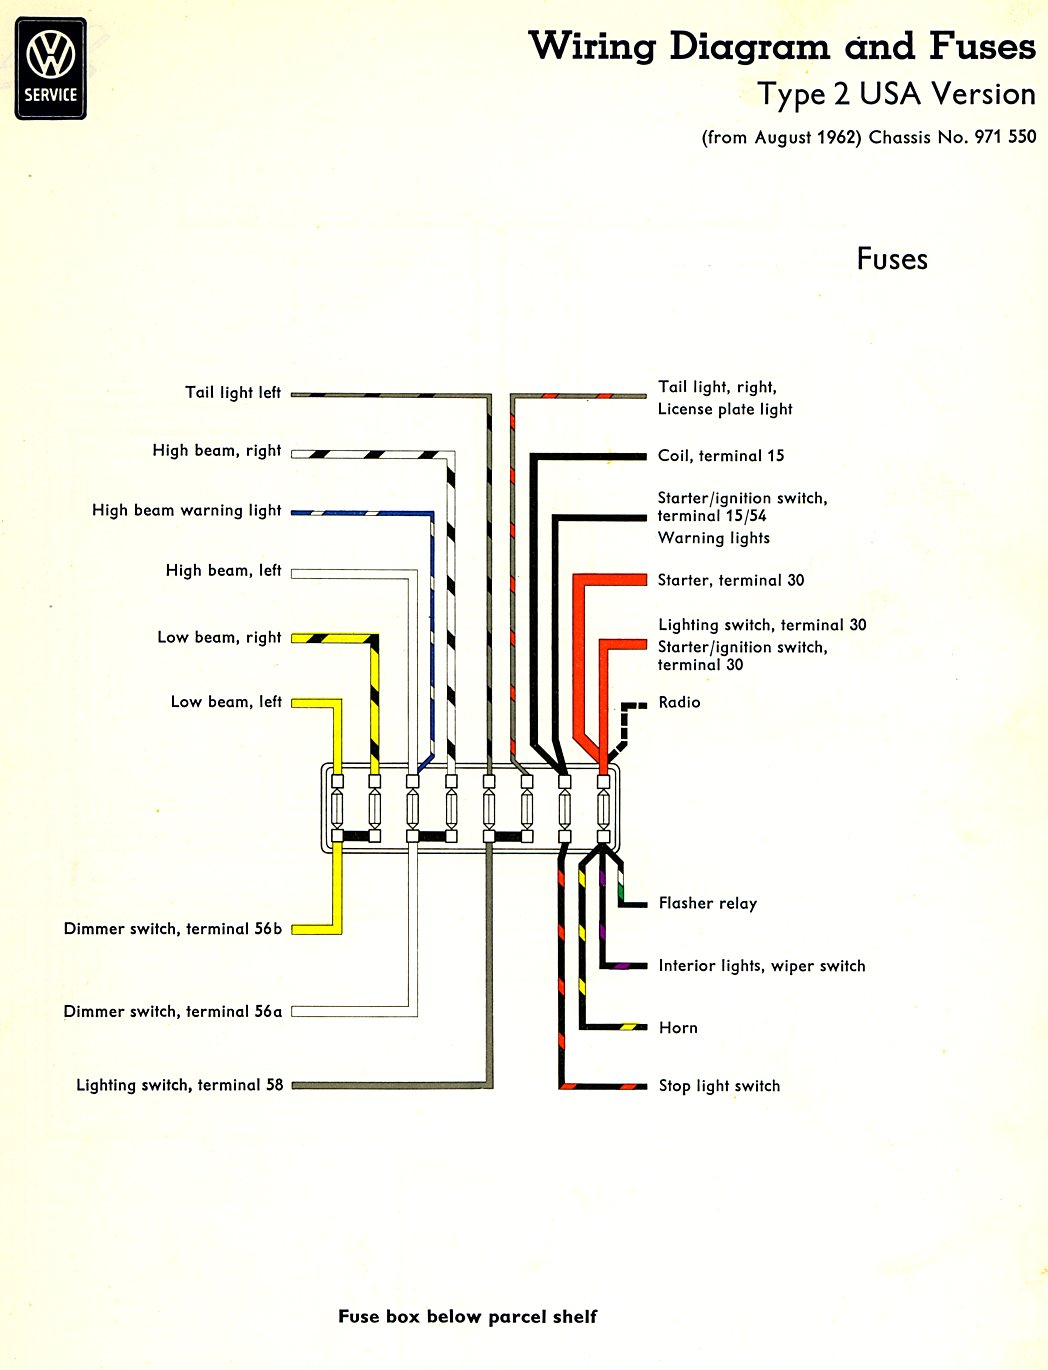 Headlight Dimmer Switch Wiring Diagram Color Cord Great Gm Highbeam Thesamba Com Type 2 Diagrams Rh